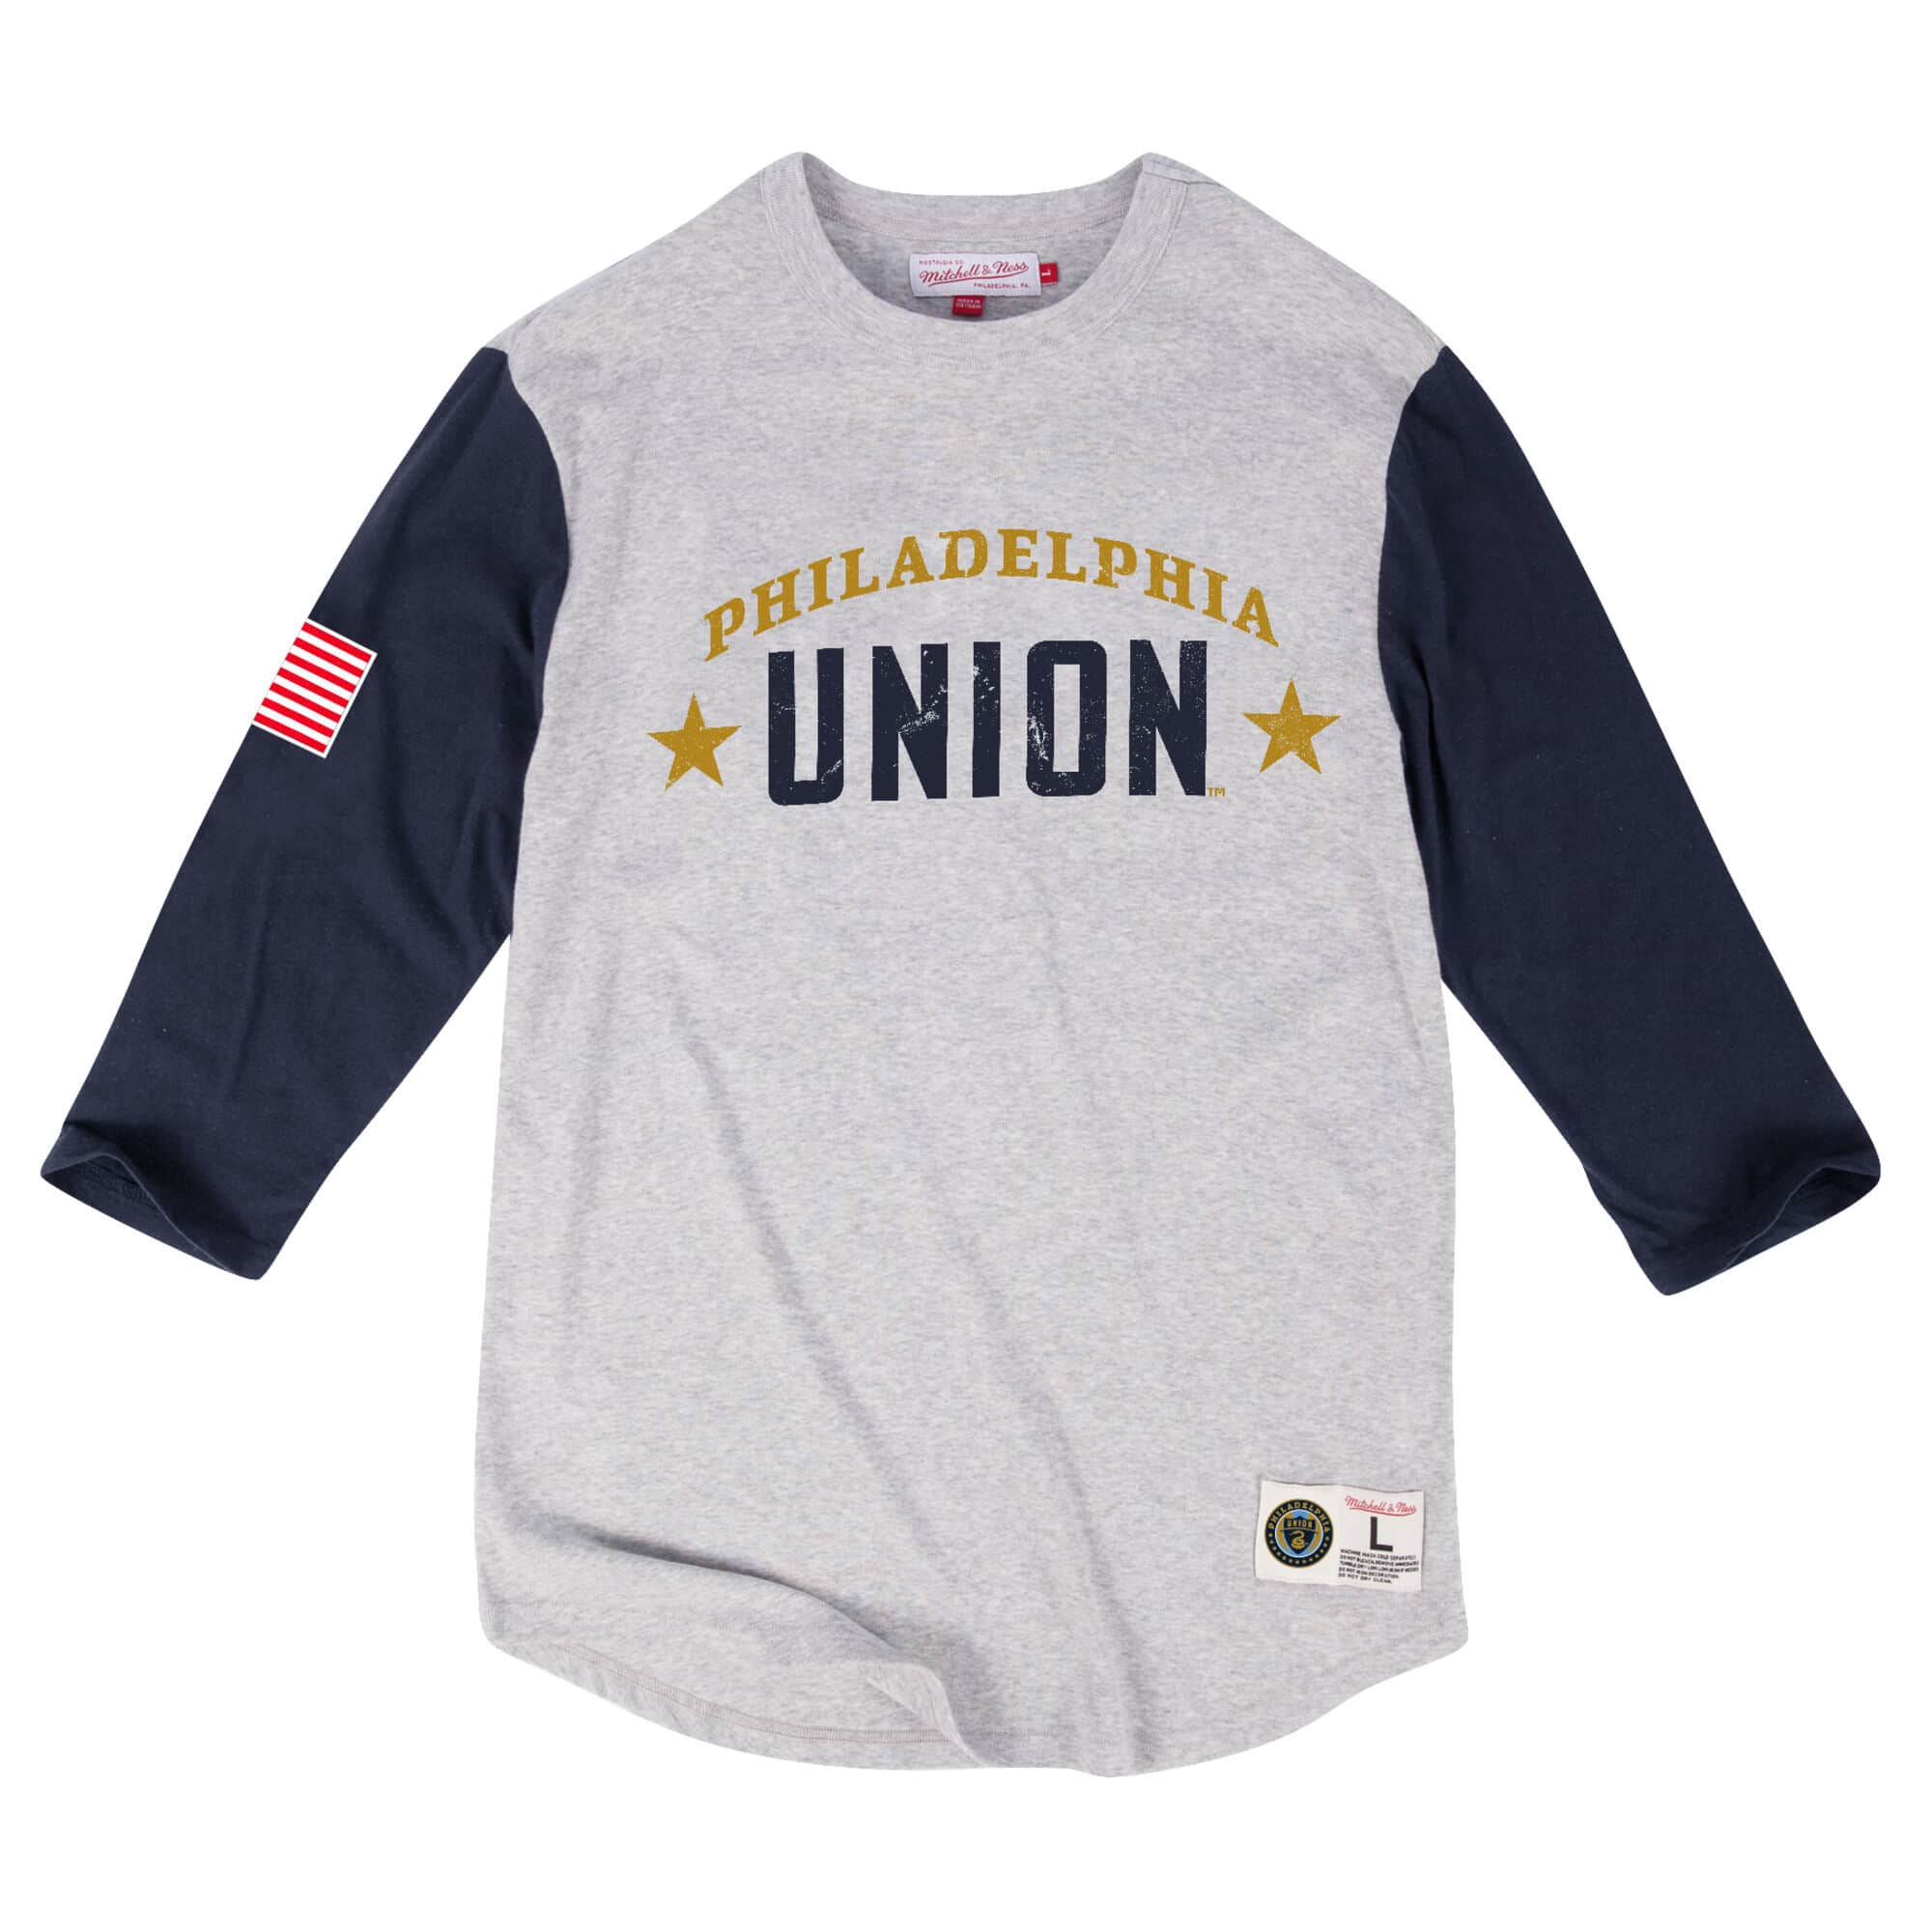 Scoring Position 3/4 Sleeve Philadelphia Union